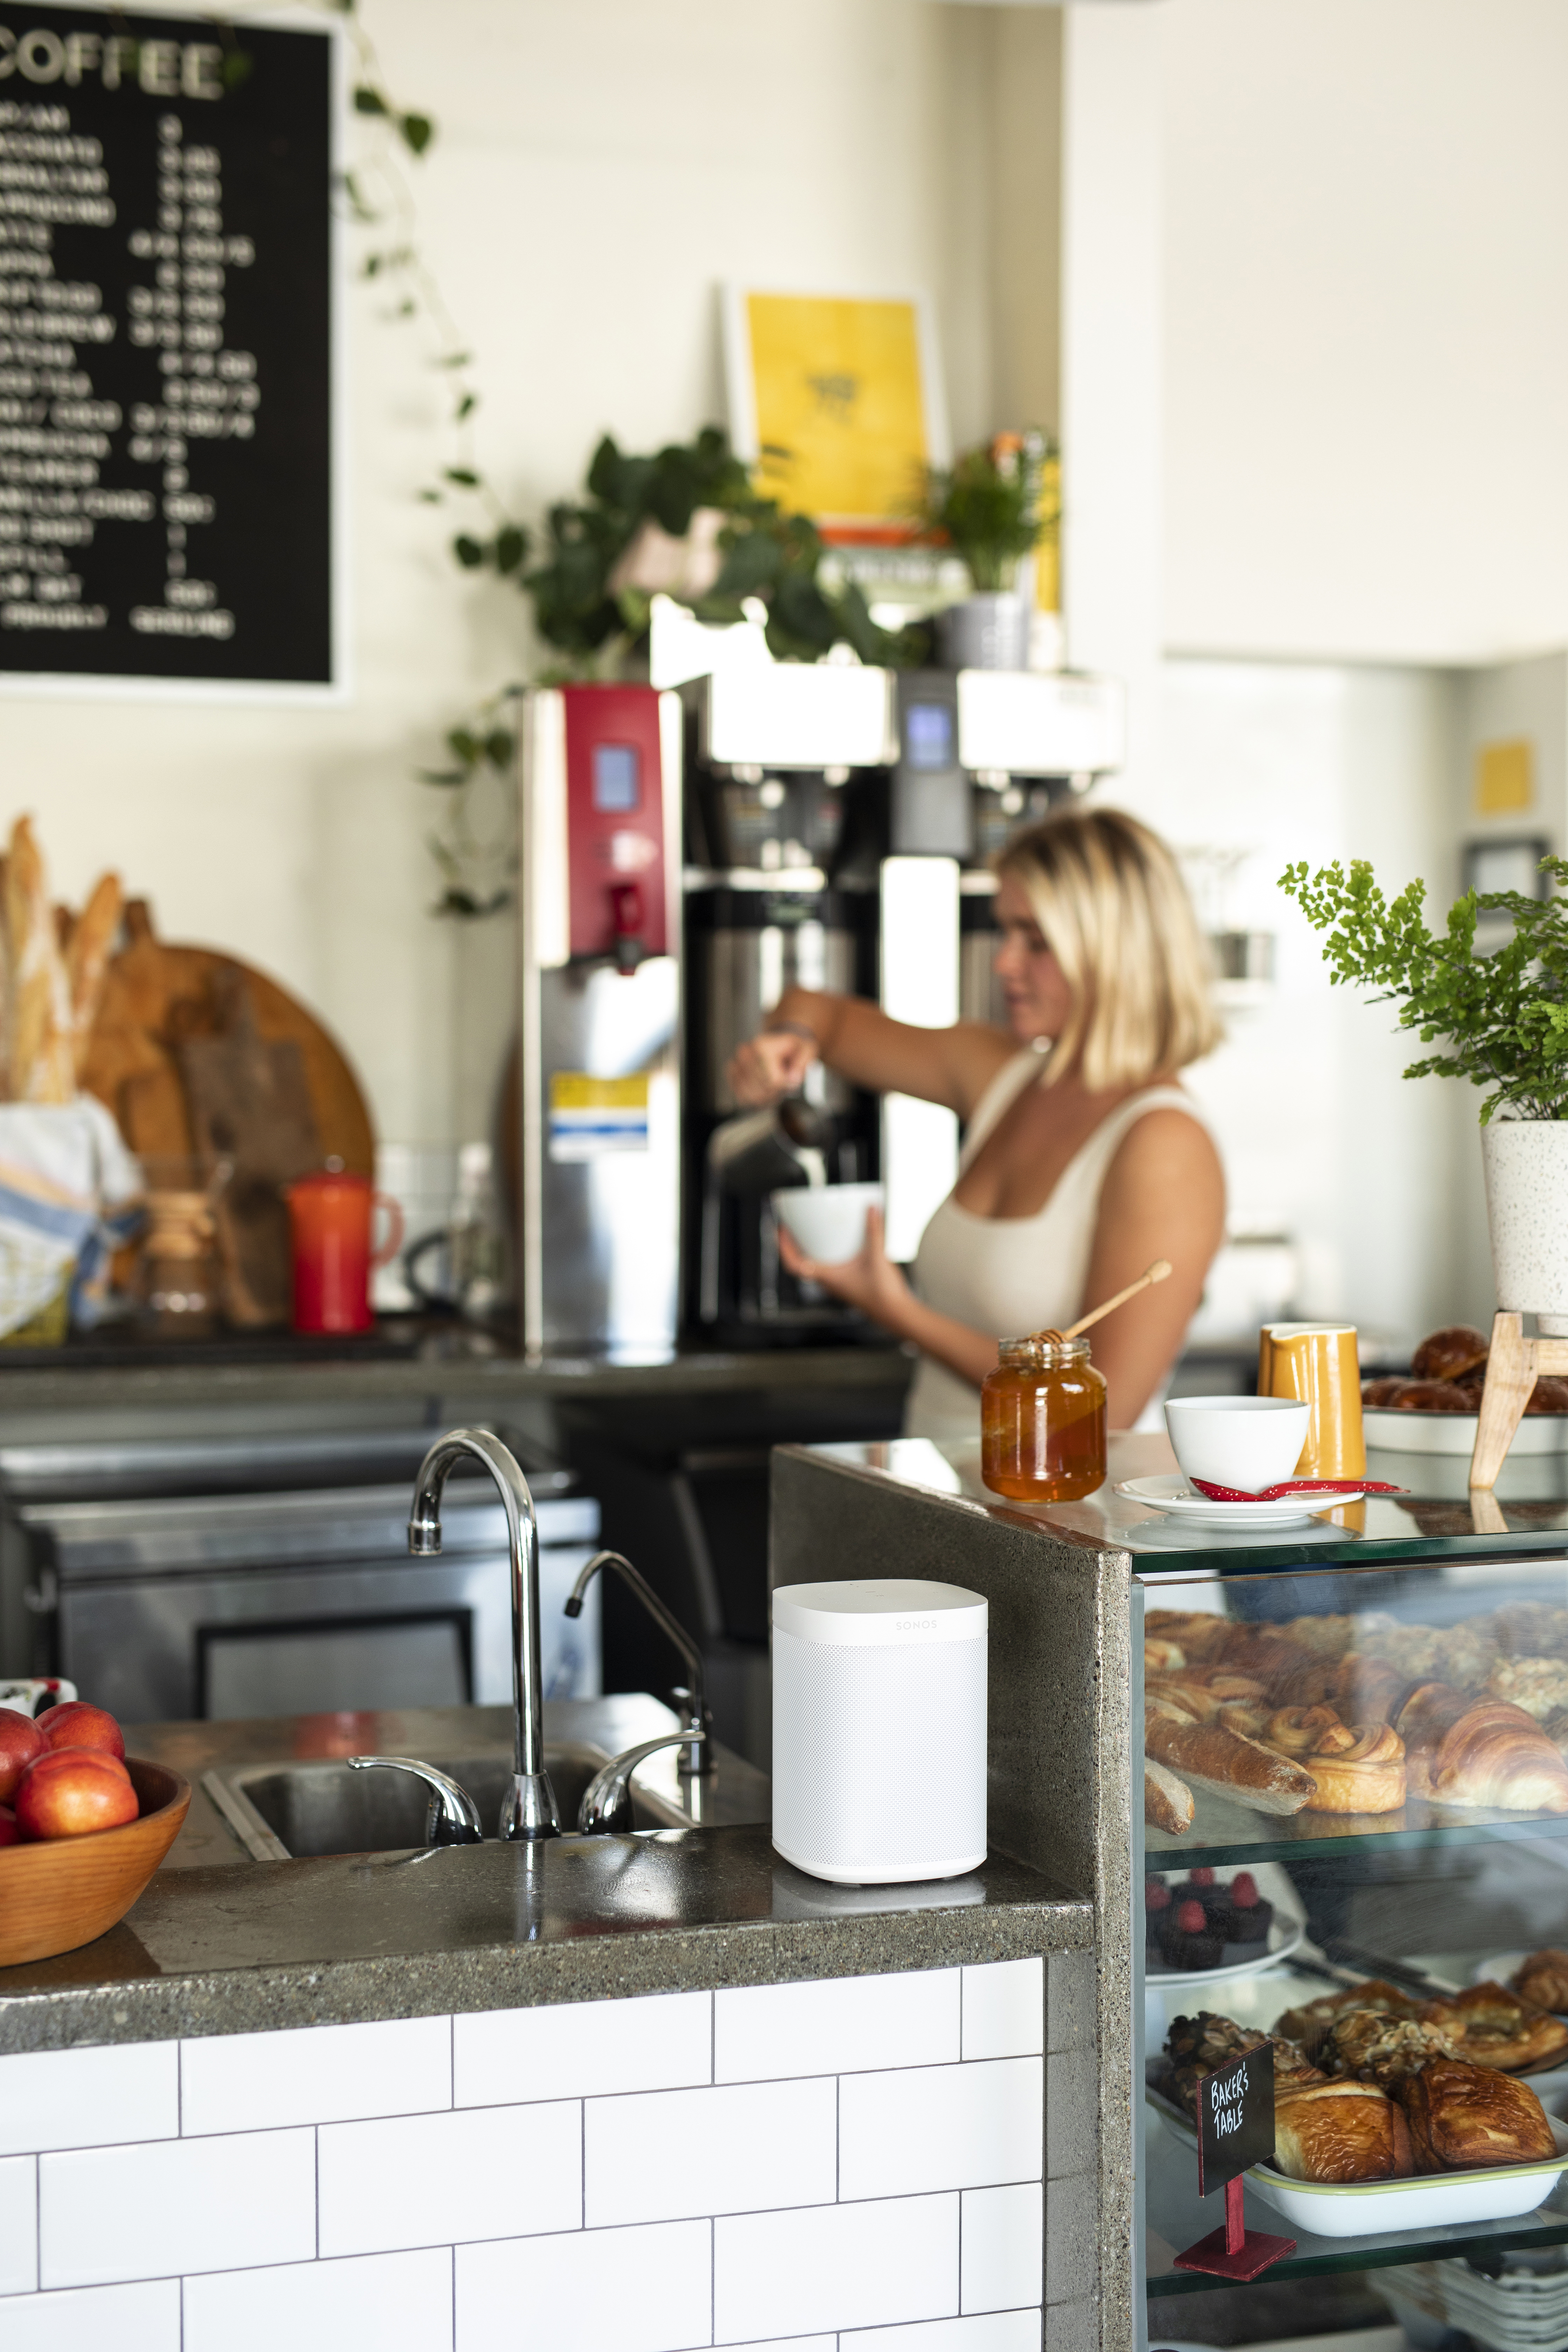 One_White-Lifestyle-At_Home_With_Sonos__Small_Business-Q2FY20_MST-MST_JPEG_fid88820